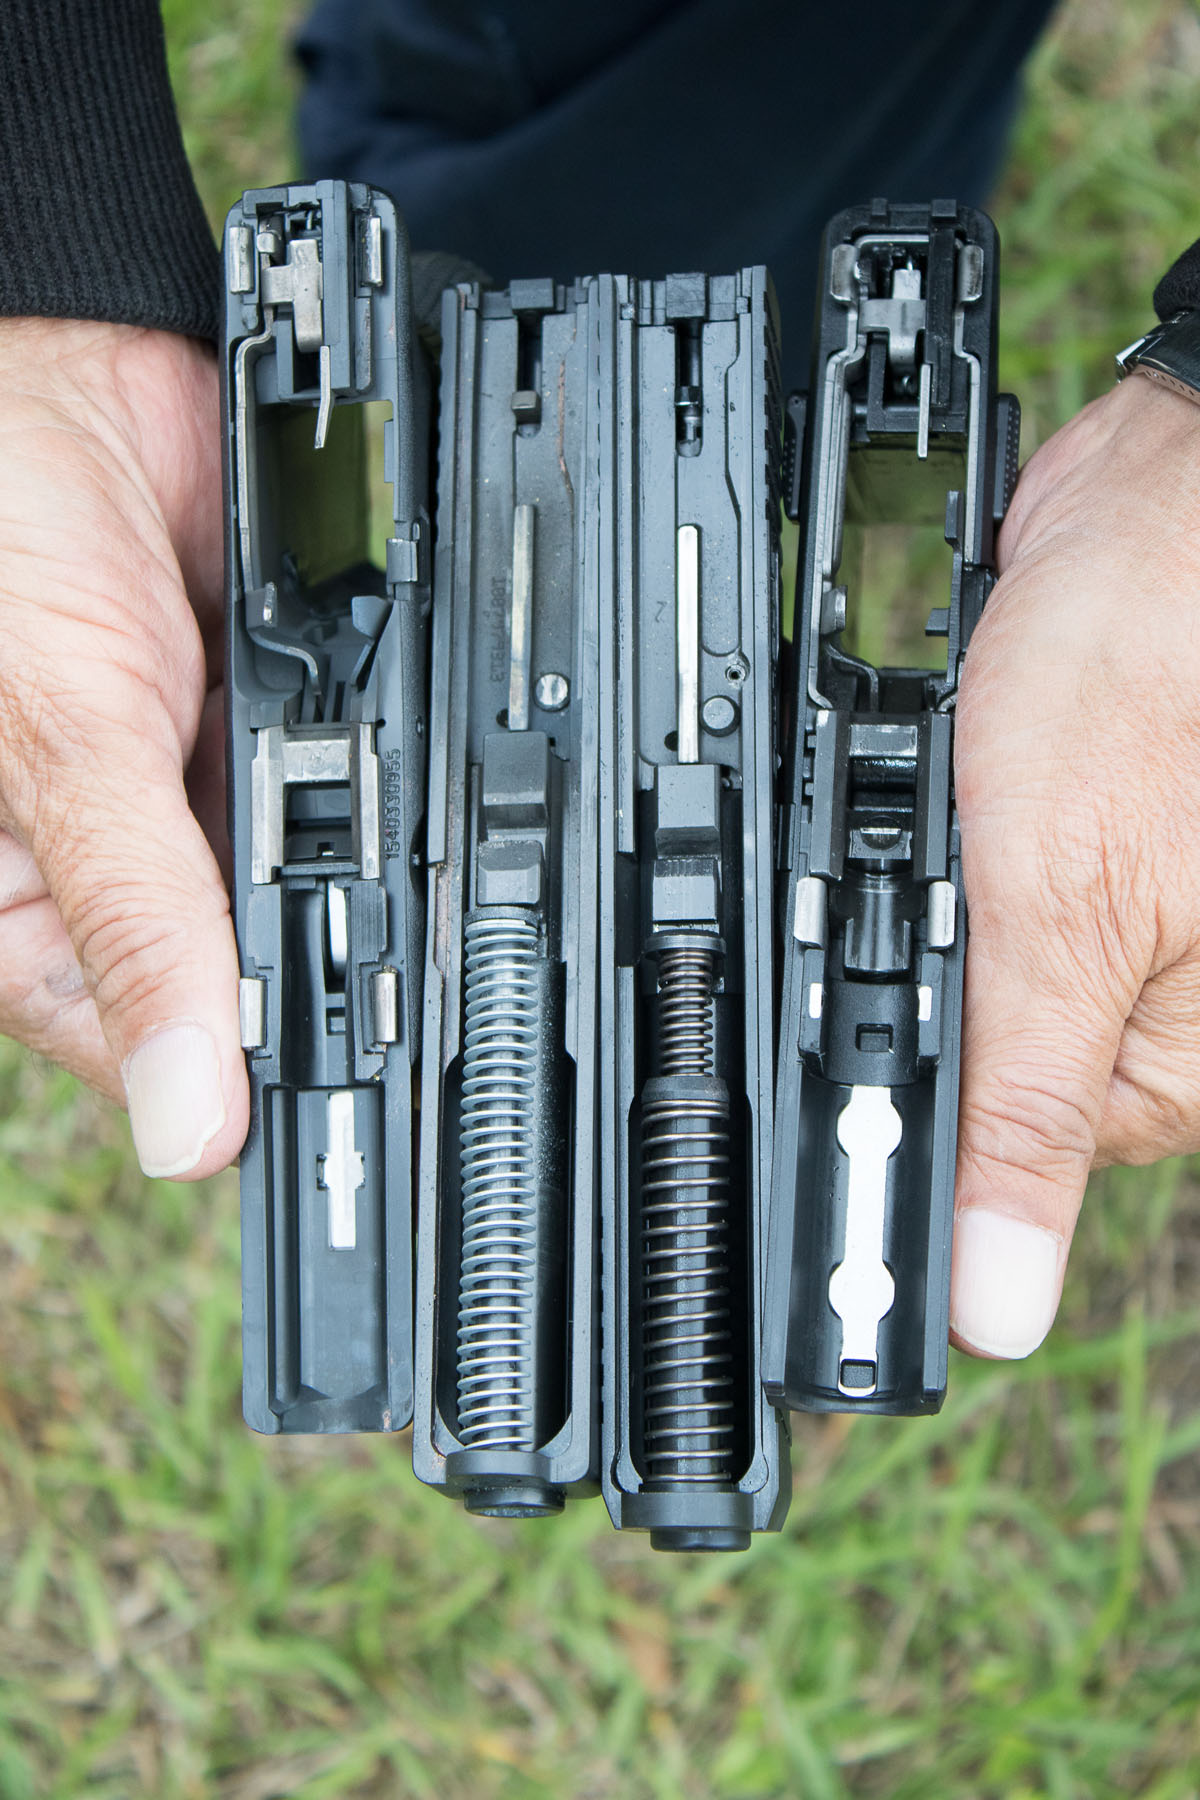 Glock 17 Gen4 and SAR9: which is which? Hint: look for ambi thumb safety levers, a SAR9 feature.